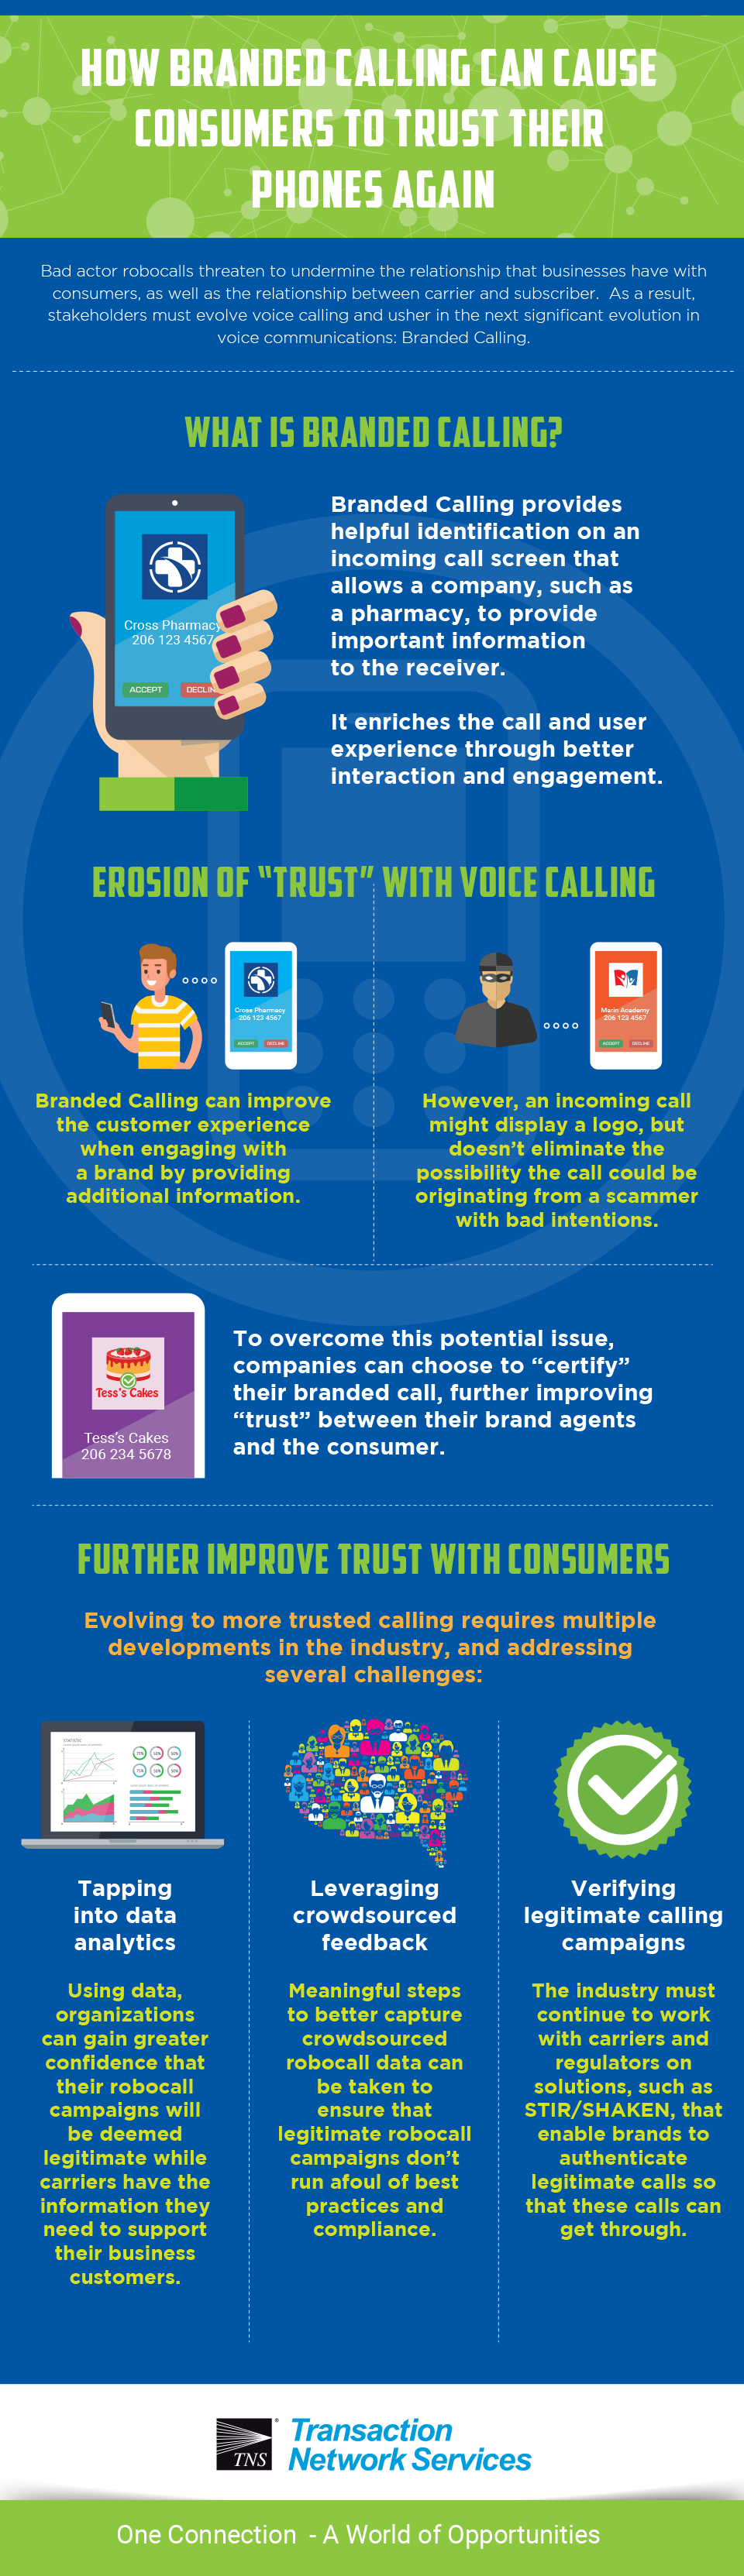 How Branded Calling can Cause Consumers to Trust Their Phones Again